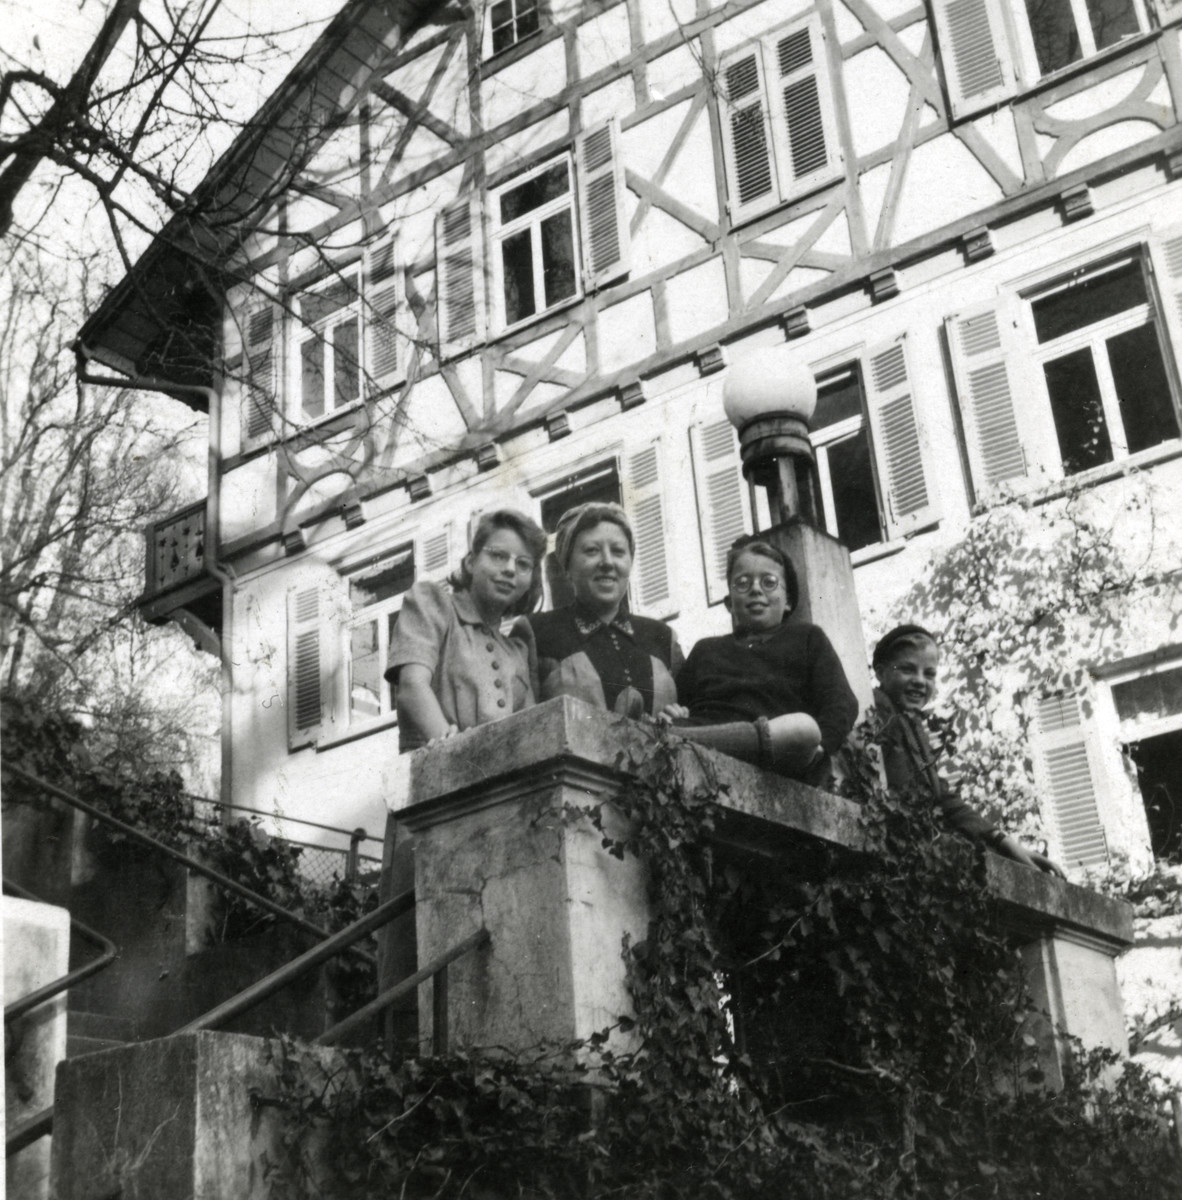 The Joshua family stands outside the Jordanbad sanitorium near Biberach a few months after their liberation.  Pictured are Karin, Elisabeth, Henry and Jacob Joshua.   The sanitorium Jordanbad was run by Franciscan nuns. It was requisitioned by the French occupying army to be used by the UNRRA for the convalescence of concentration camp survivors and displaced persons.   The photo was taken by Julius Peter Lunzer who was an officer in the Canadian Navy and the son of my mother's sister, Celine Lunzer who lived in Londen. He came to visit us in a resplendent uniform and lifted our spirits greatly. Besides Julius Peter Lunzer another son and two daughters of Celine also served in the British army.